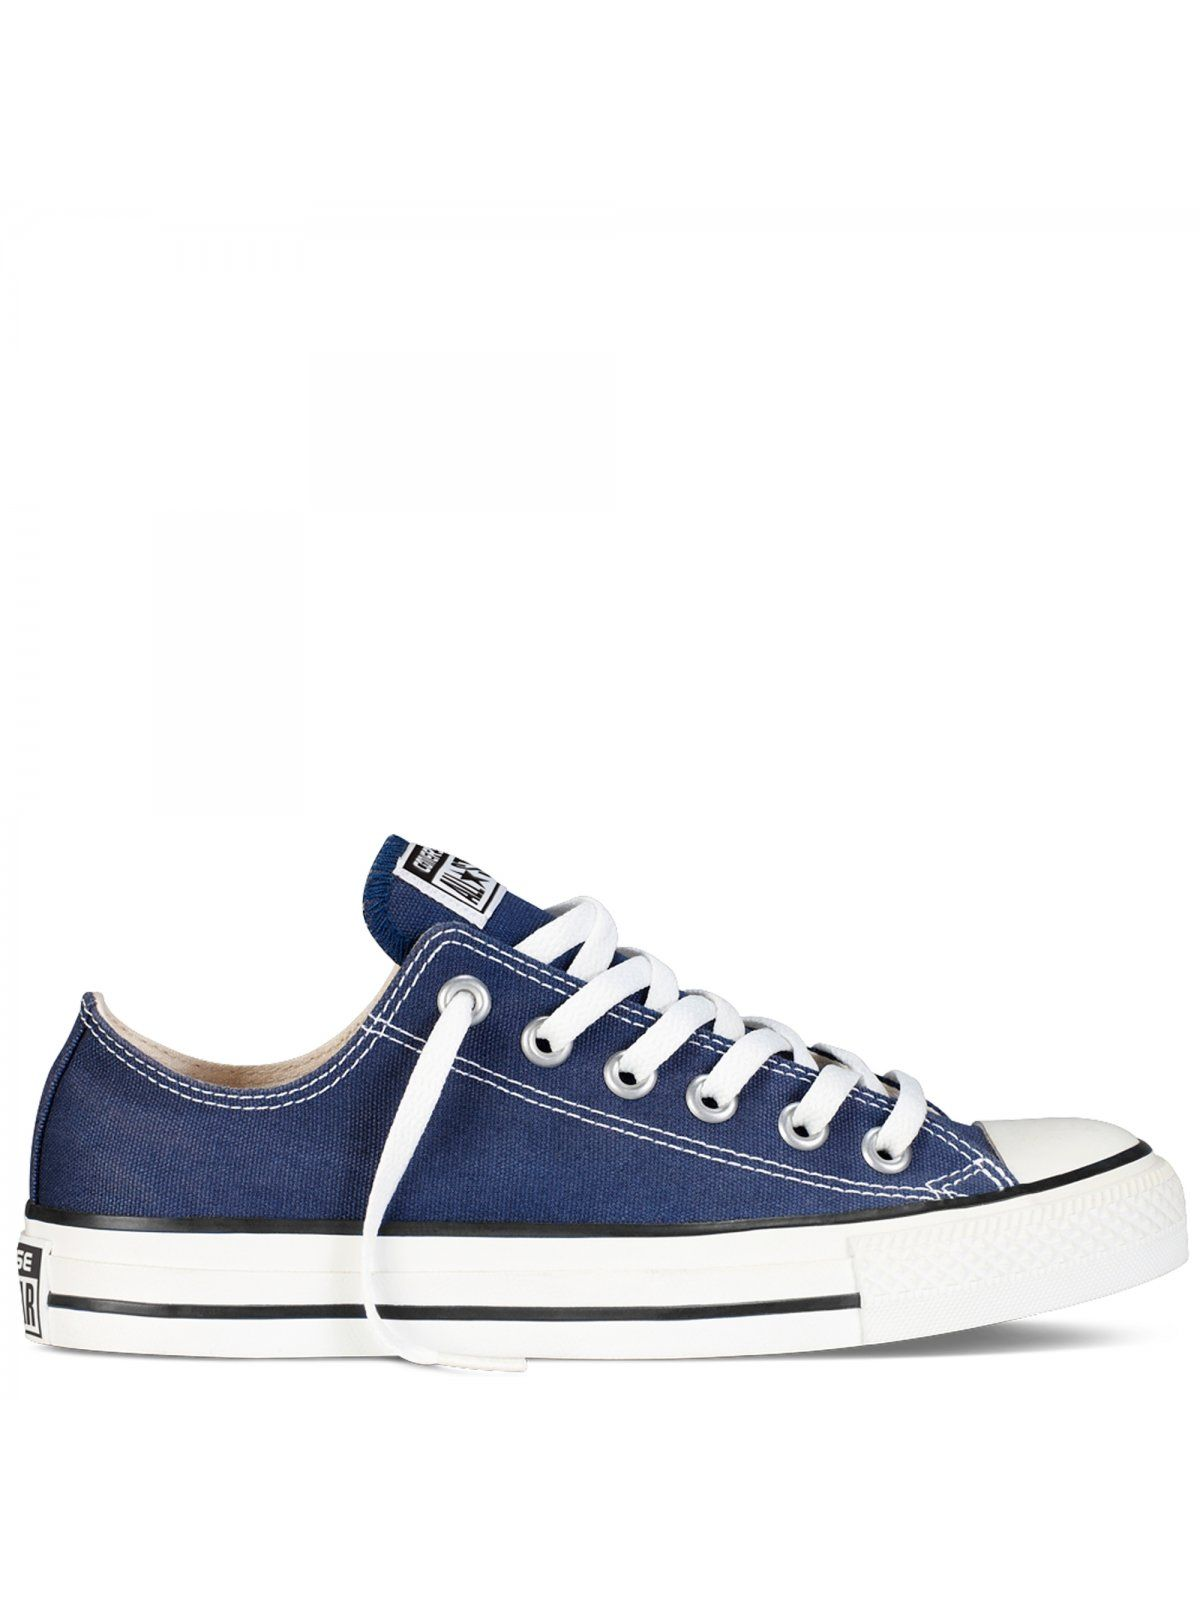 Converse All Star Unisex Chuck Taylor Low Top - Navy